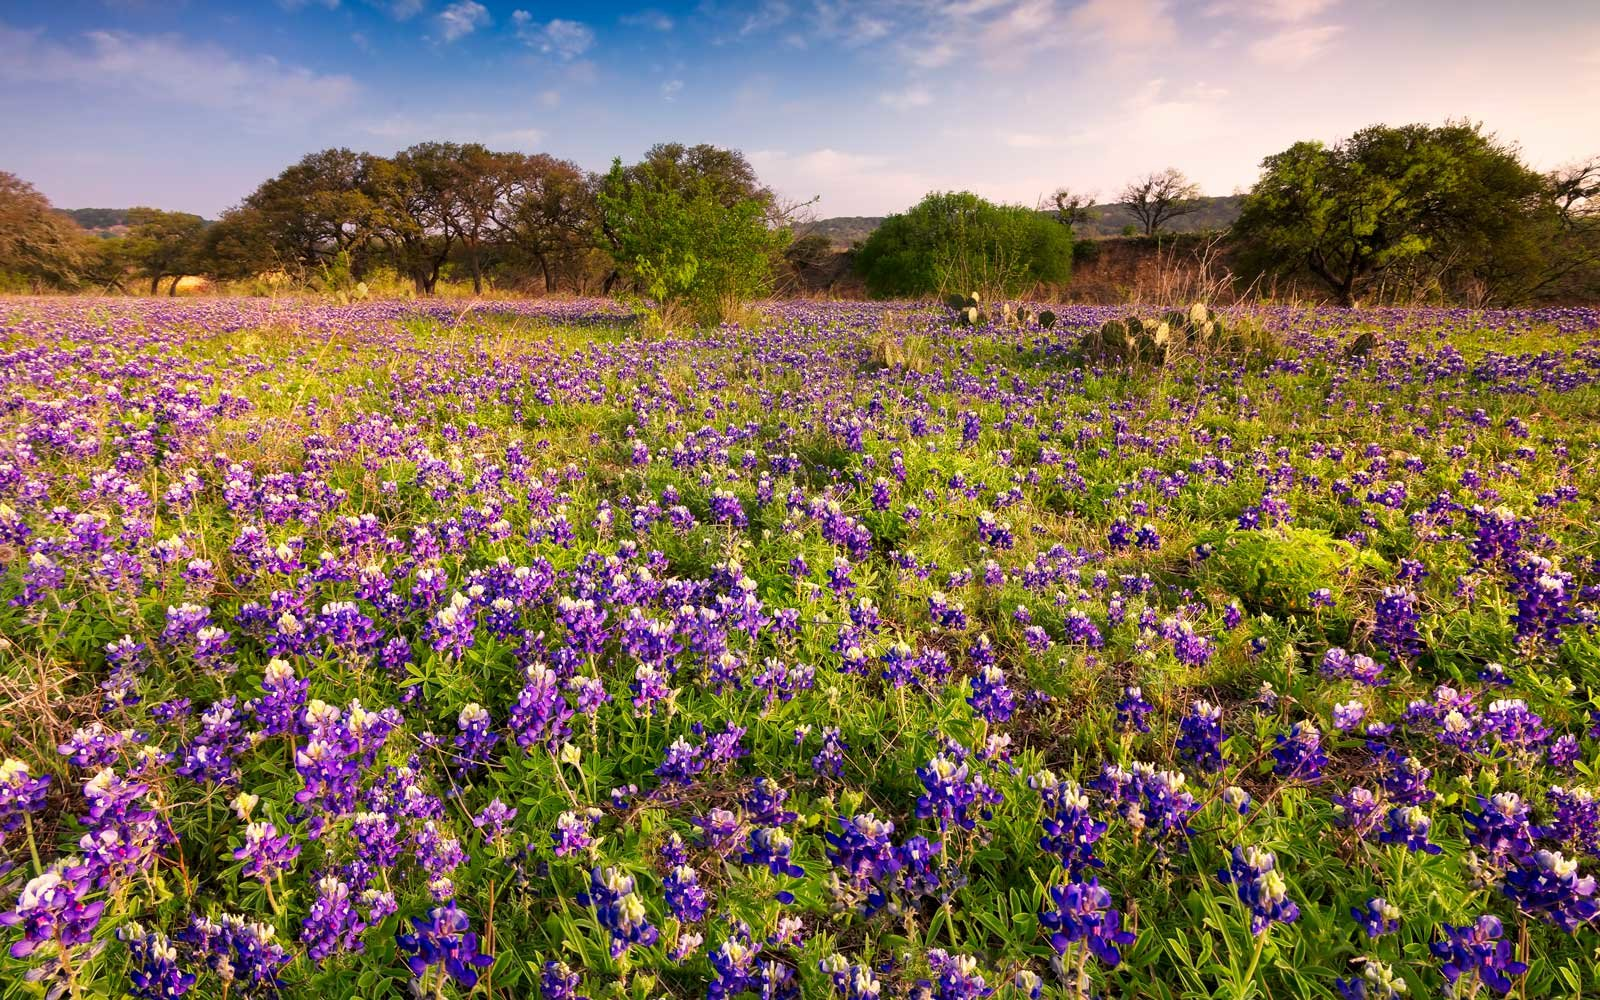 Bluebonnets field in the Texas Hill Country